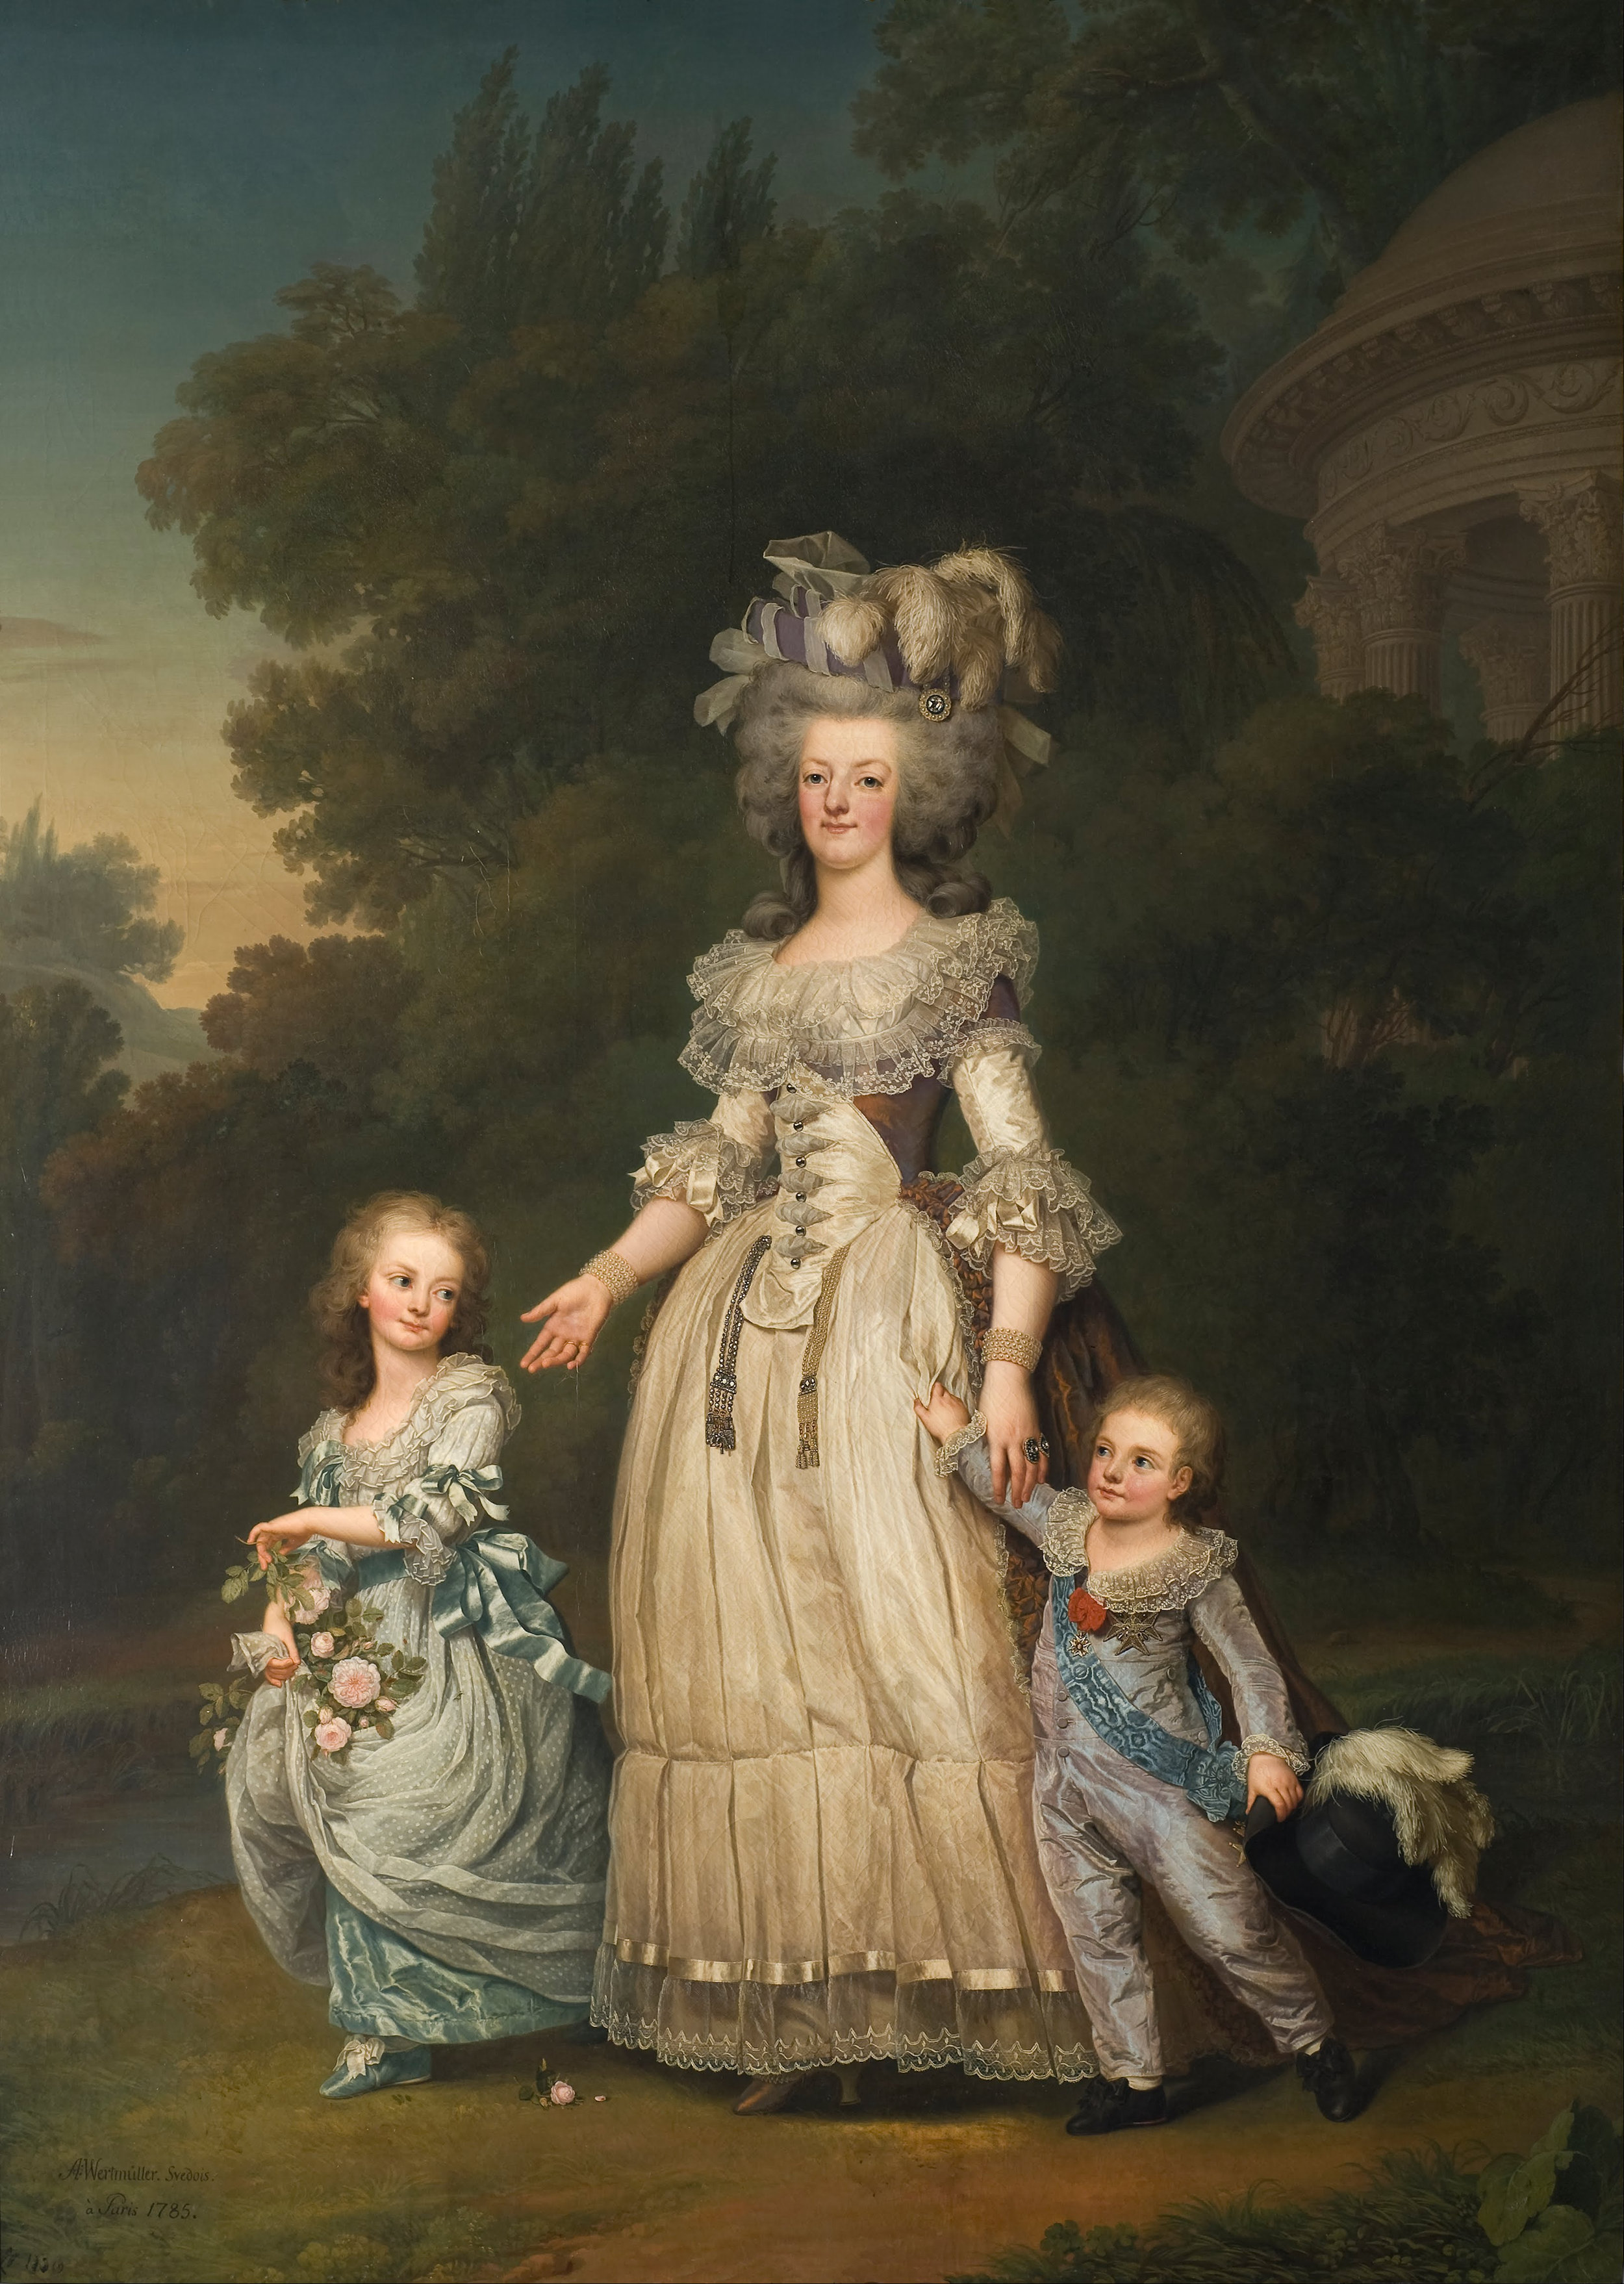 Adolf_Ulrik_Wertmüller_-_Queen_Marie_Antoinette_of_France_and_two_of_her_Children_Walking_in_The_Park_of_Trianon_-_Google_Art_Project.jpg